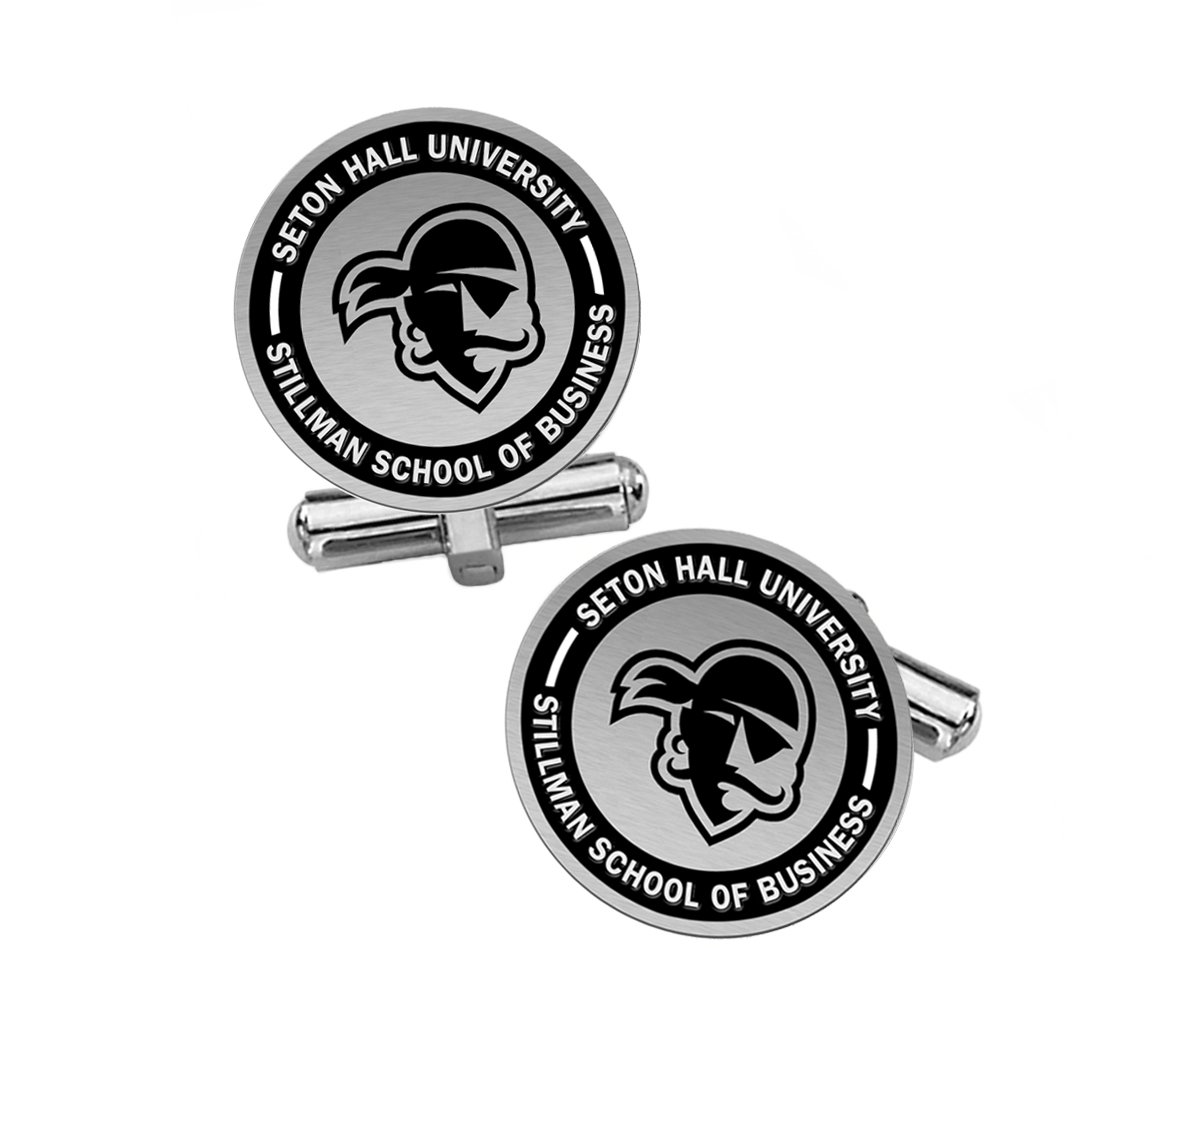 Stillman School of Business Cufflinks | Seton Hall University by College Jewelry